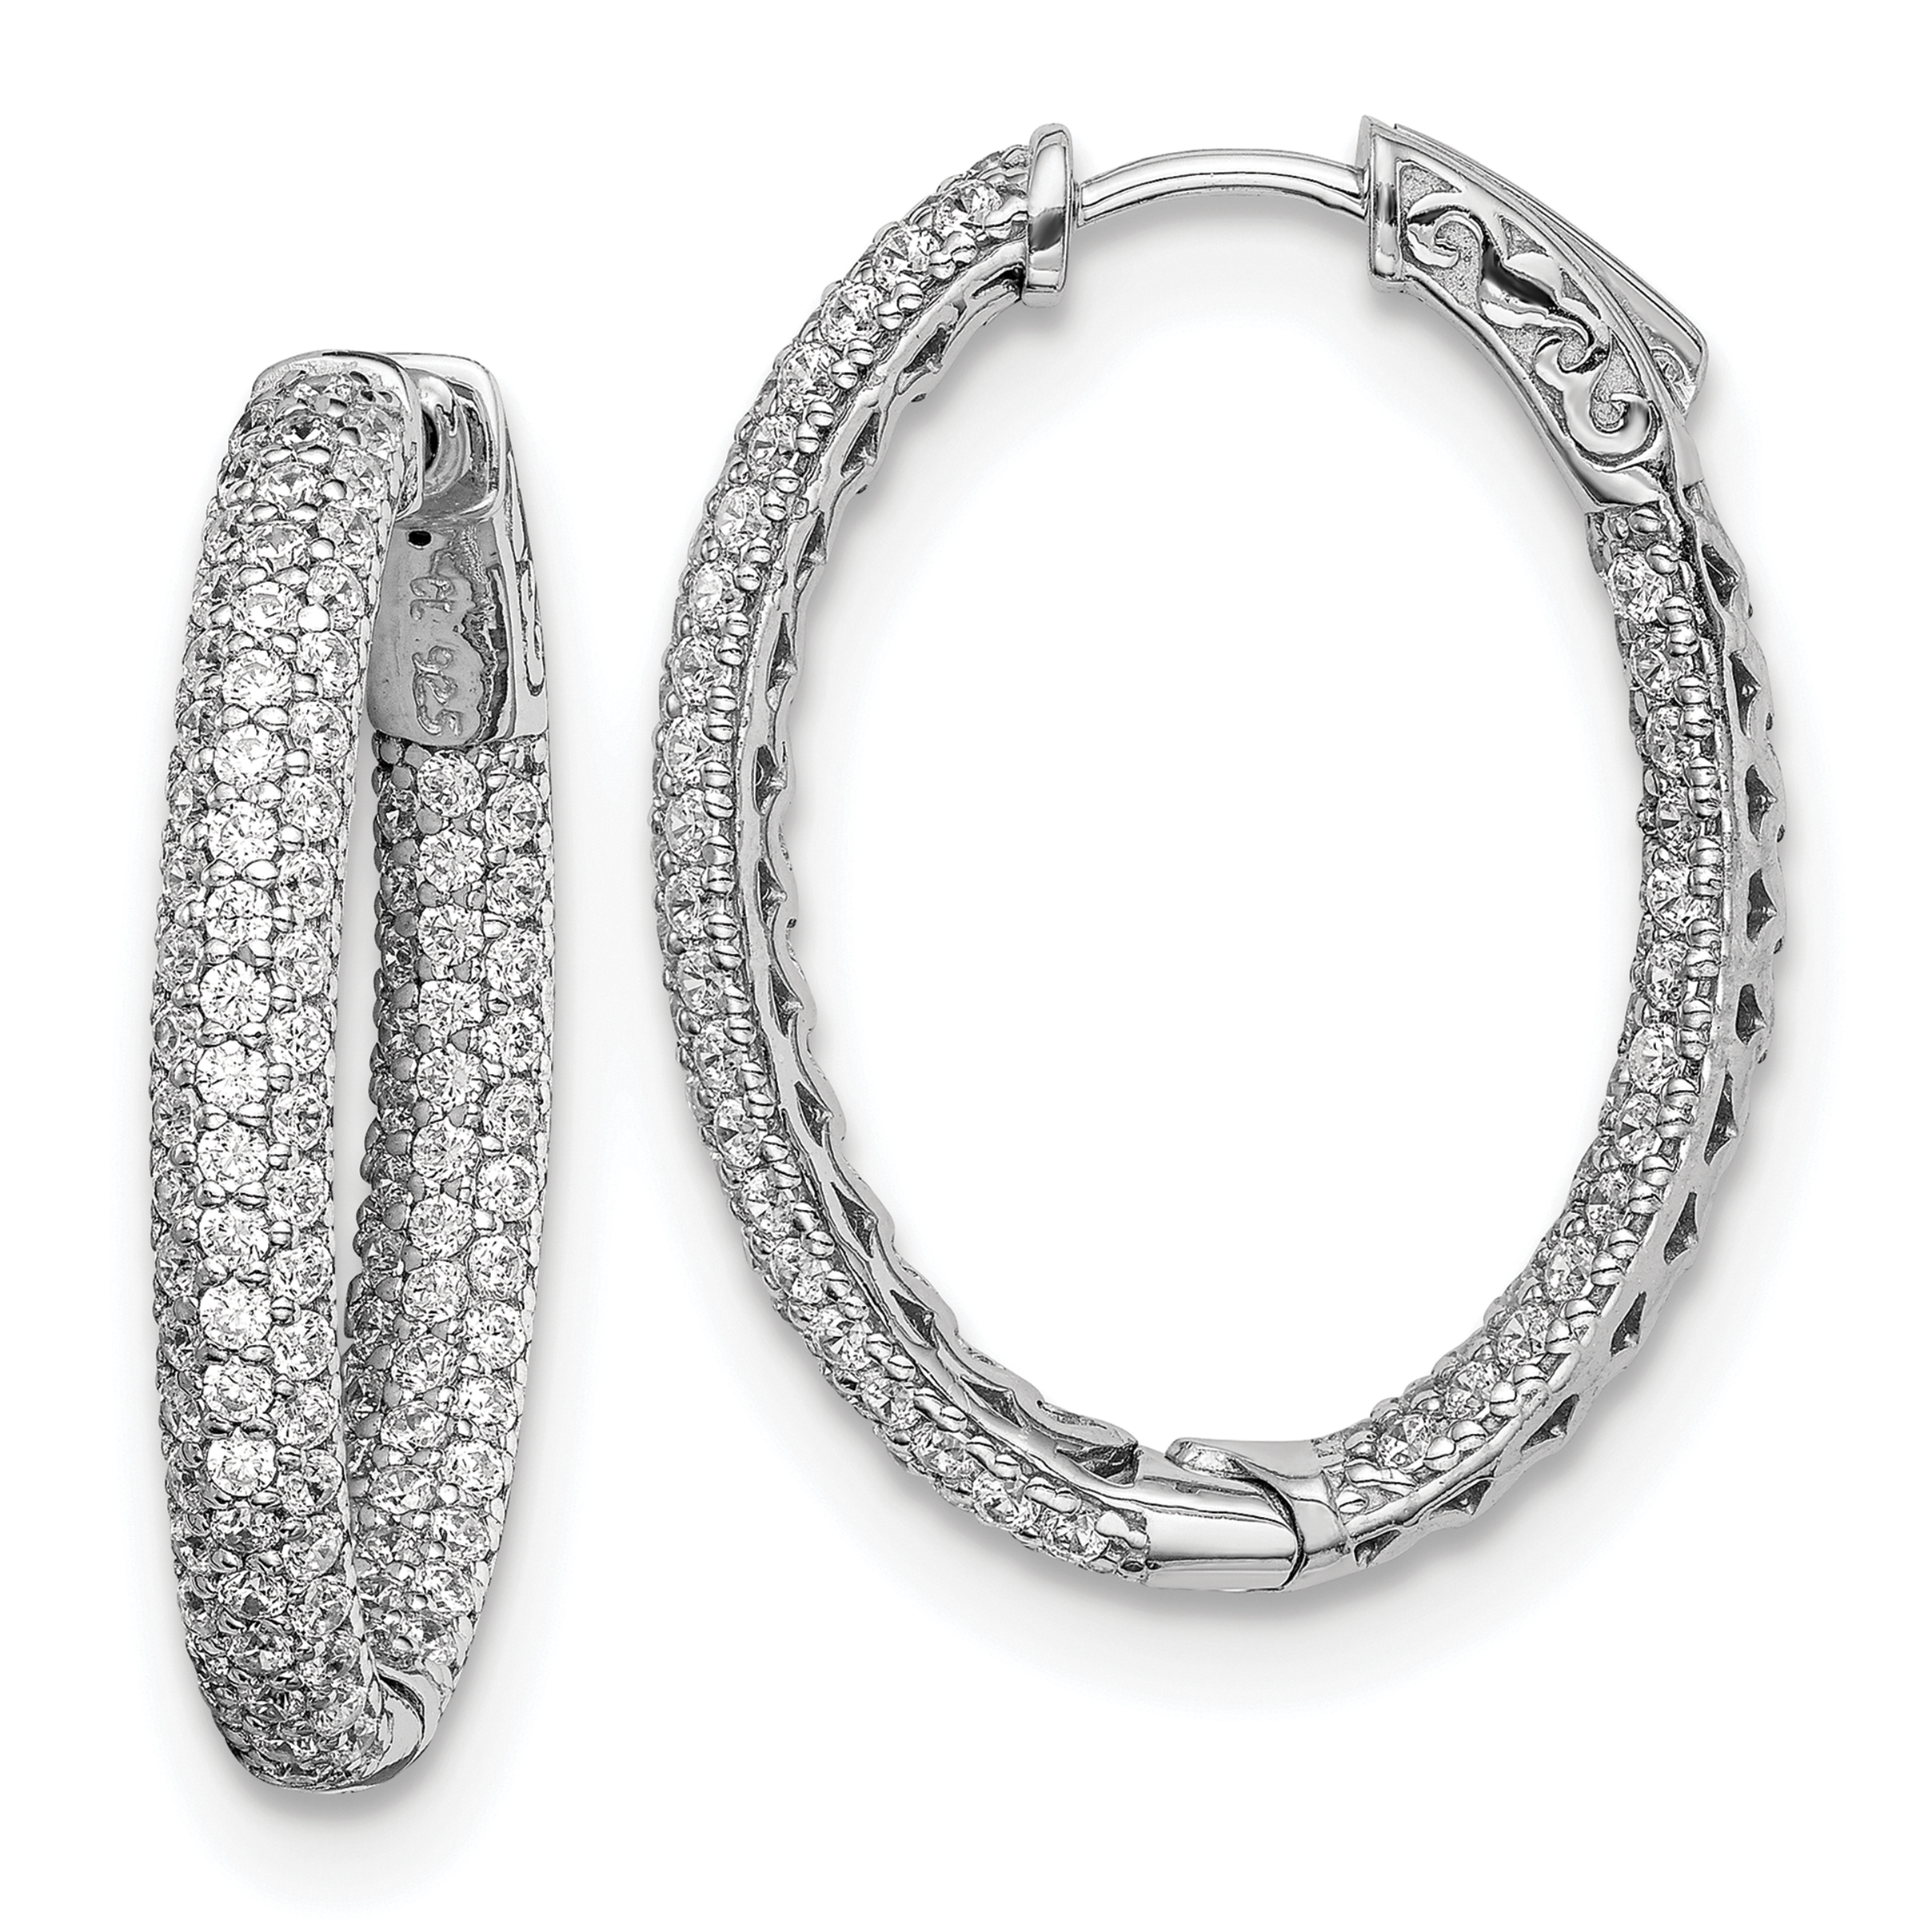 925 Sterling Silver .81 Inch Diameter Cubic Zirconia Cz Hoop Earrings ... 11e6fdb331